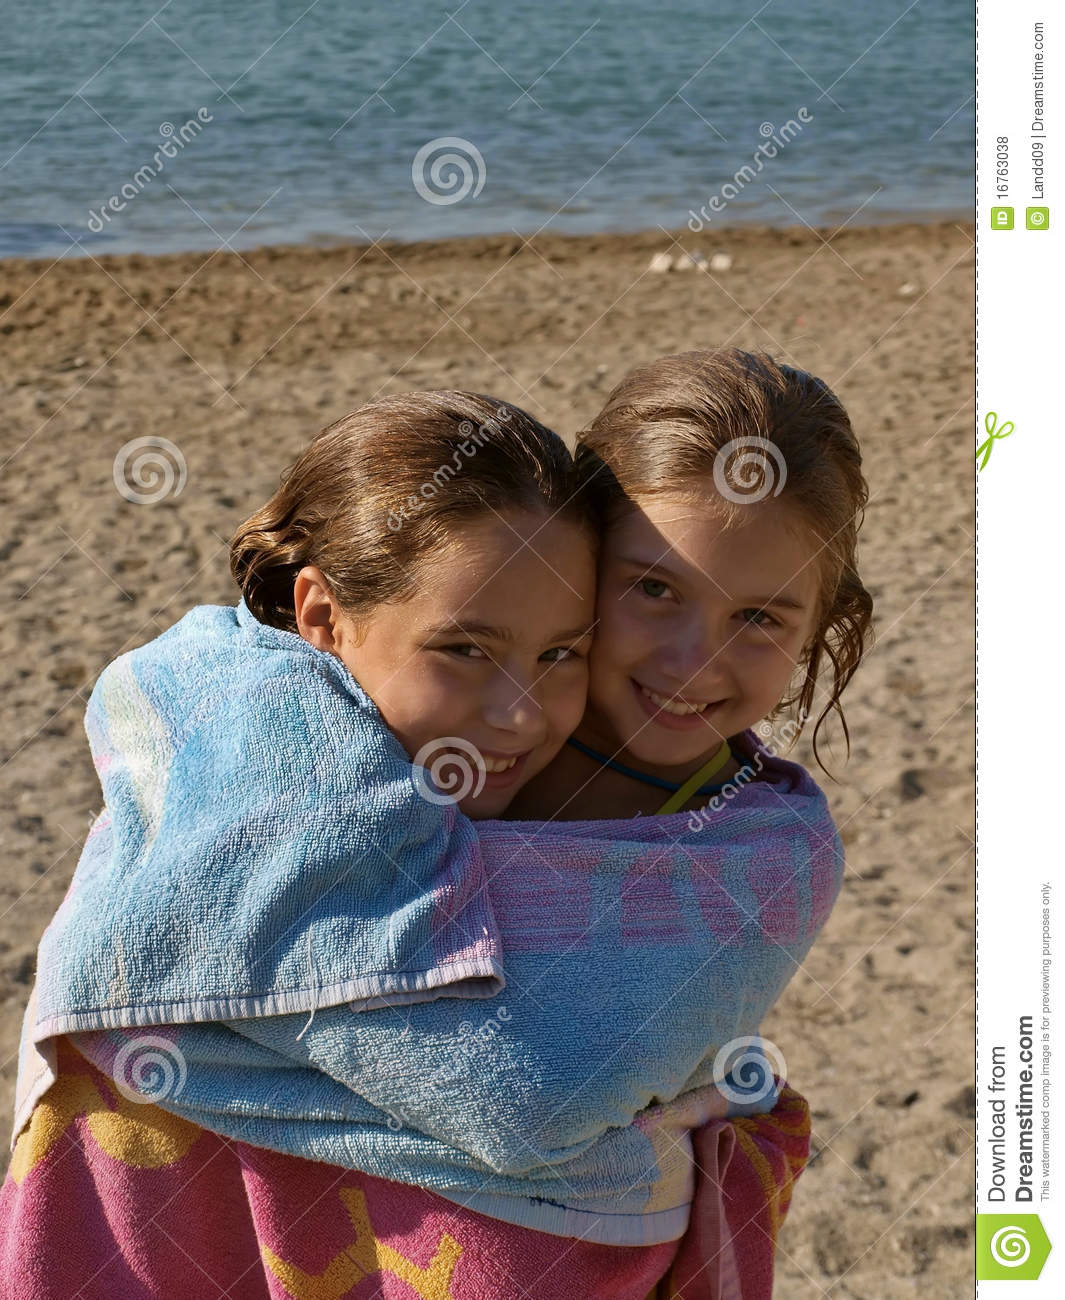 Embraced sisters on beach stock photo. Image of both ...